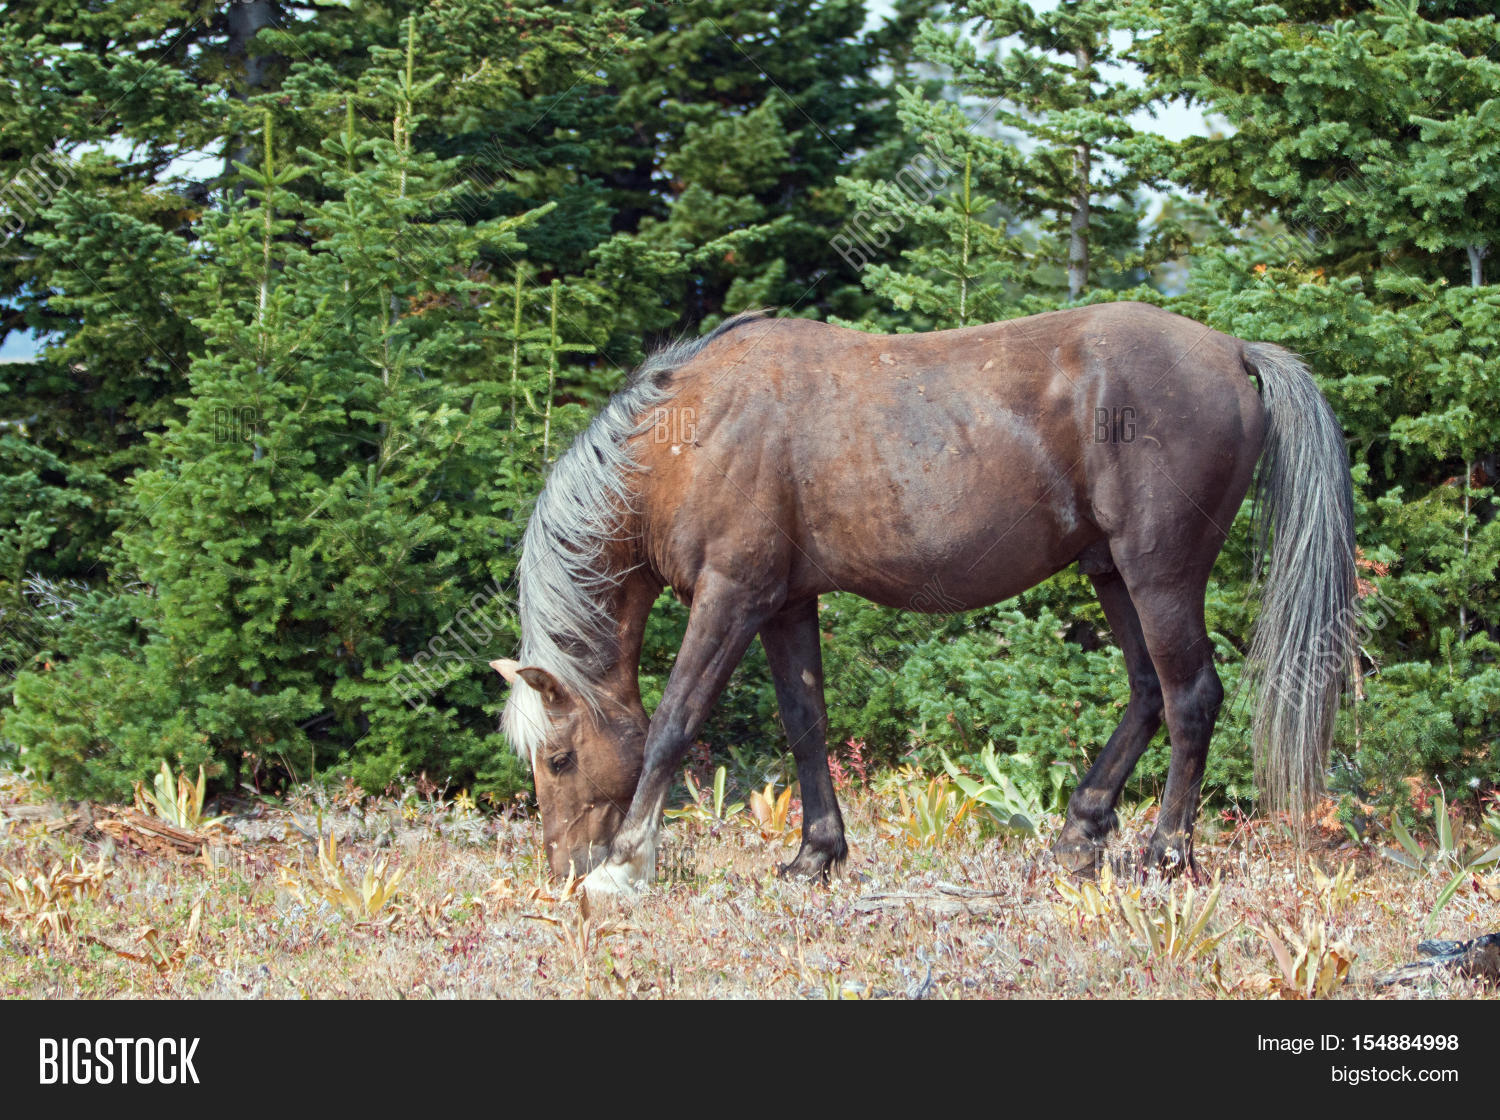 Wild Horse Sooty Image Photo Free Trial Bigstock